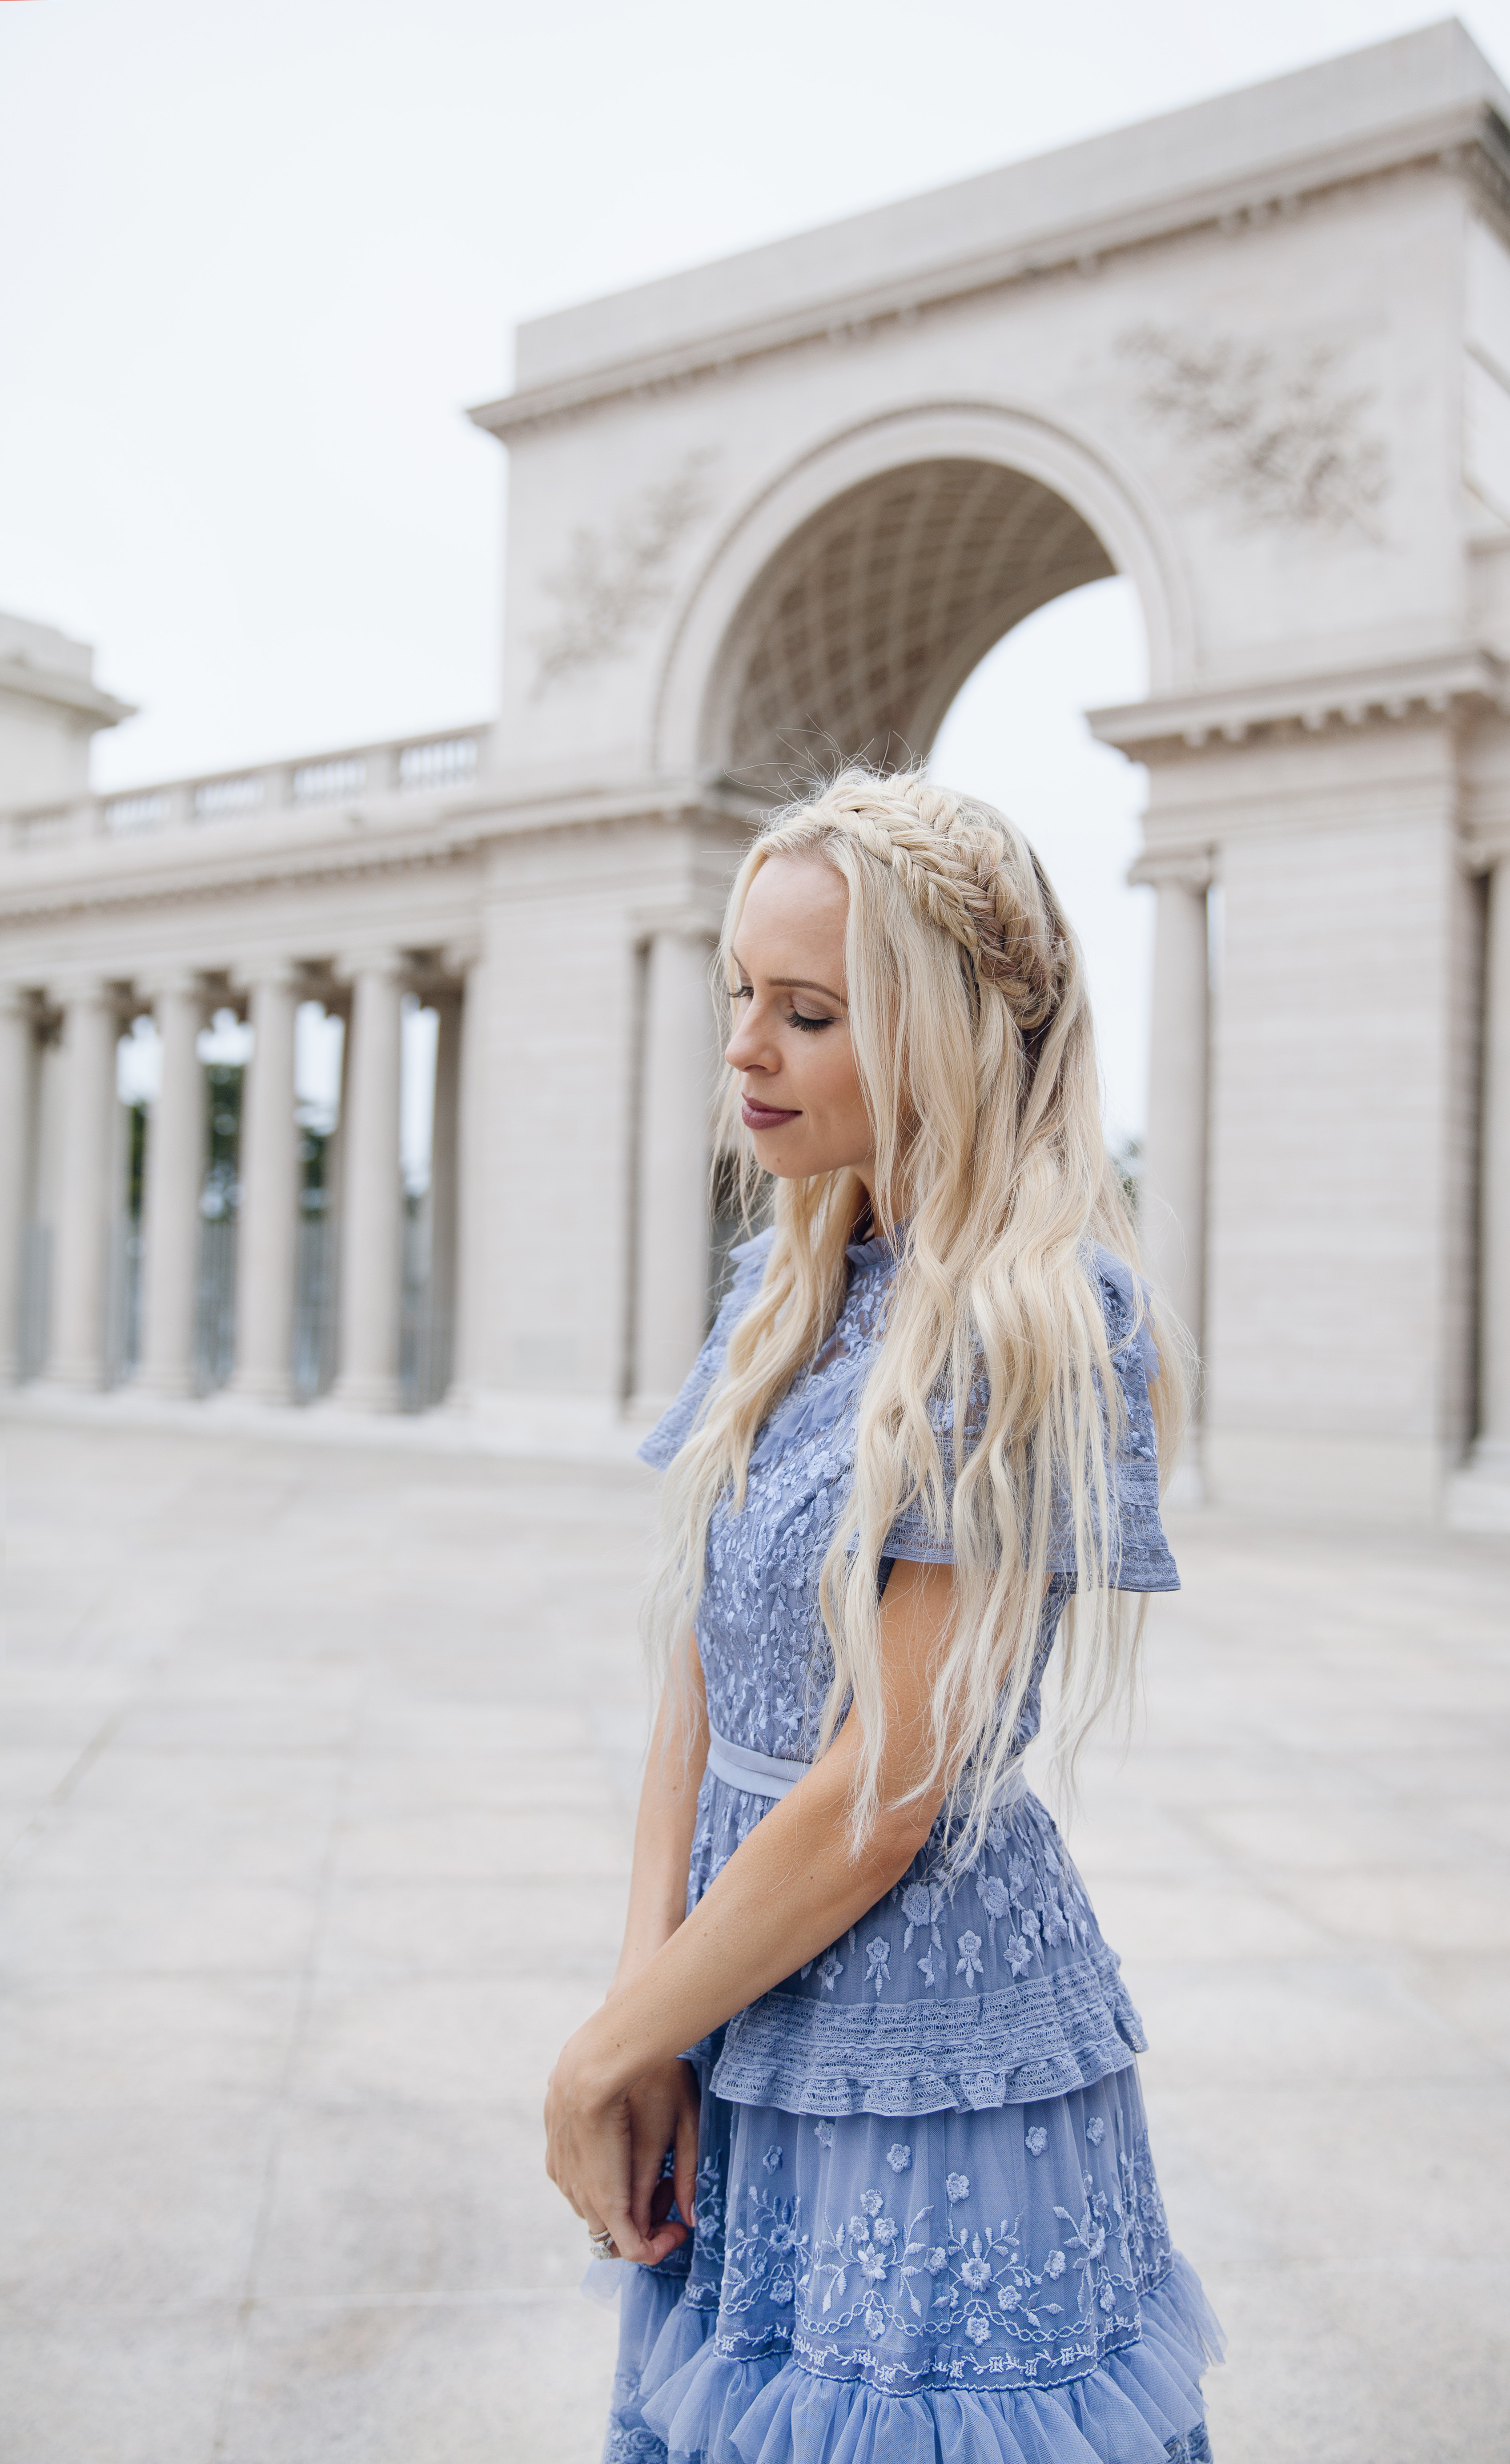 how to eBay, my style journey, needle & thread dress maxi pink embroidered| Top San Francisco fashion blog, Lombard and Fifth, features her tips on How to Ebay effectively: image of a blonde woman wearing a stunning maxi dress found on Ebay